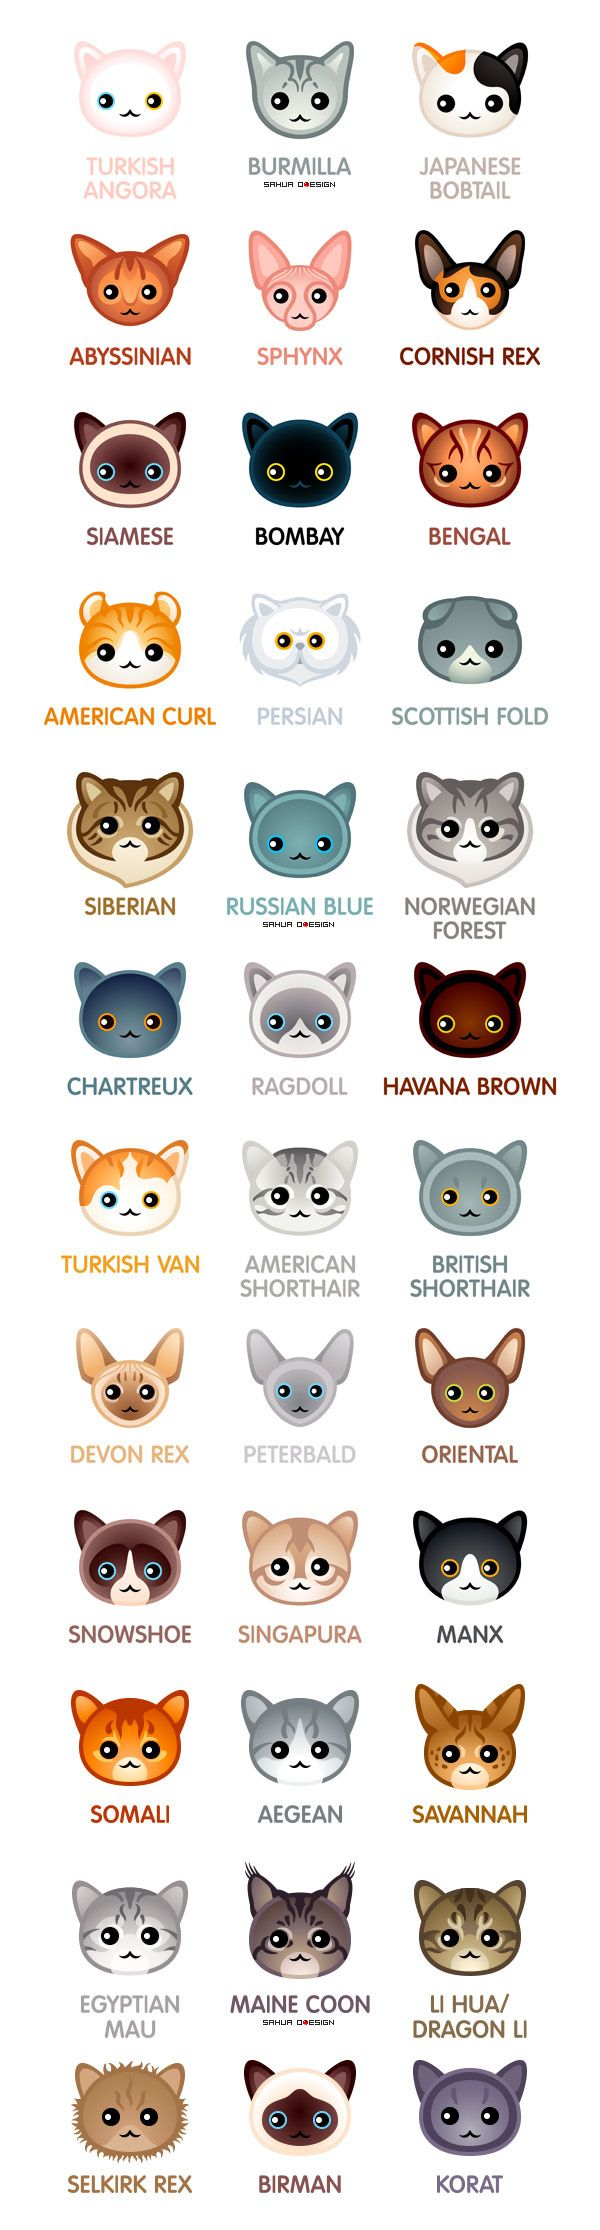 Kawaii cat breeds for the Сat-people of the world ;)